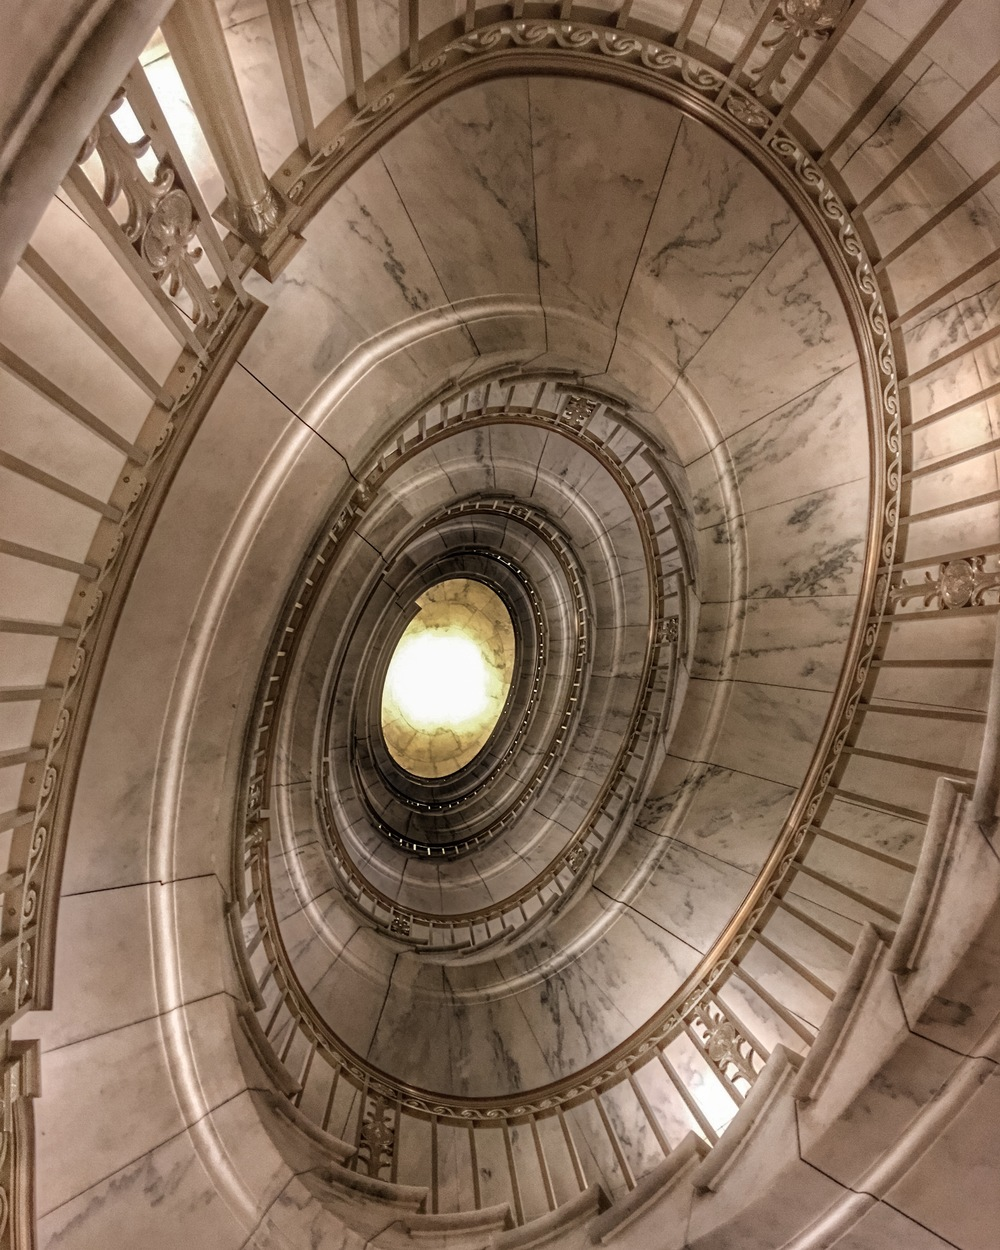 The US Supreme Court building features two self-supporting marble spiral staircases. Touring the building is free, as is attending oral arguments in the courtroom (seating is extremely limited and done on a first-come, first-served basis).